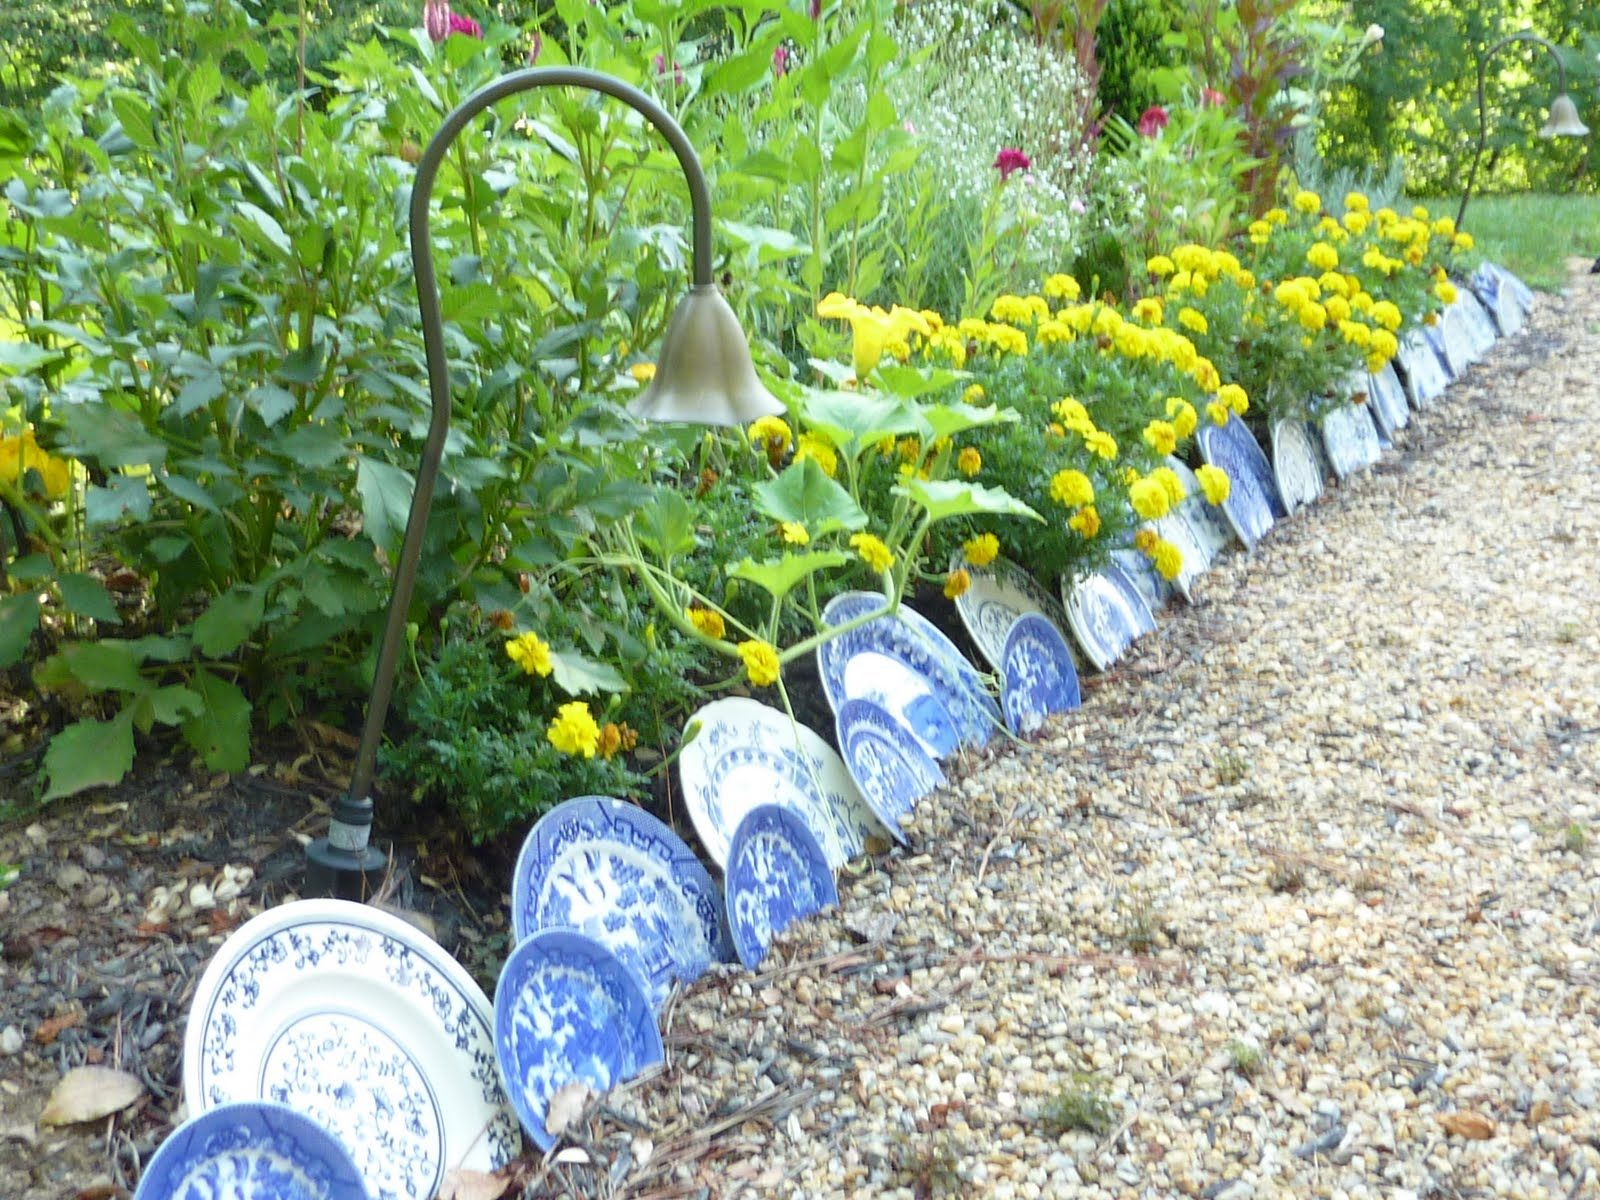 Garden edging with plates from Blooming Hill More Than Just Lavender You Know. & Garden edging with plates from Blooming Hill: More Than Just ...